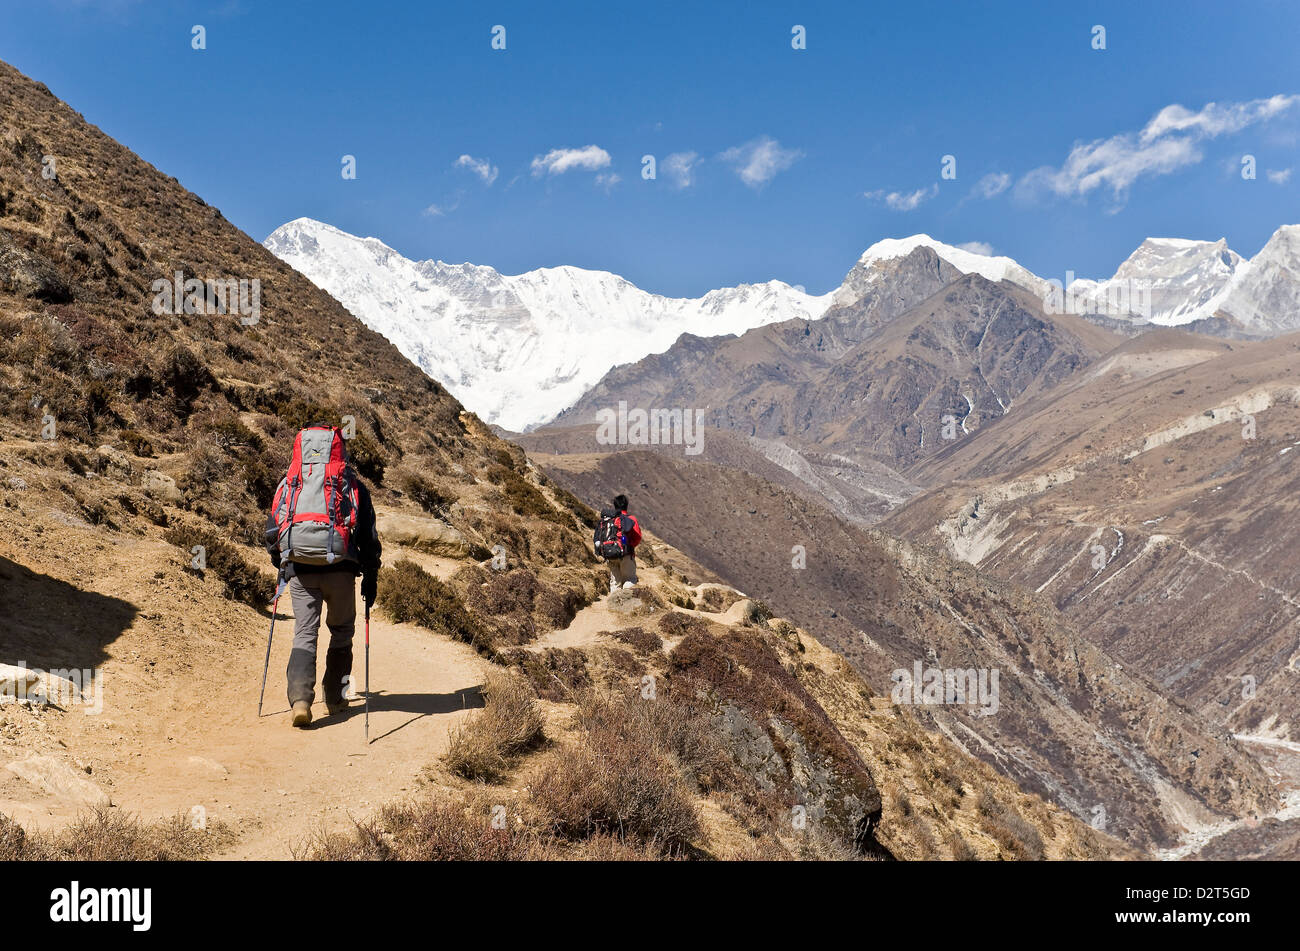 Trekkers in Dudh Kosi Valley, Solu Khumbu (Everest) Region, Nepal, Himalayas, Asia - Stock Image